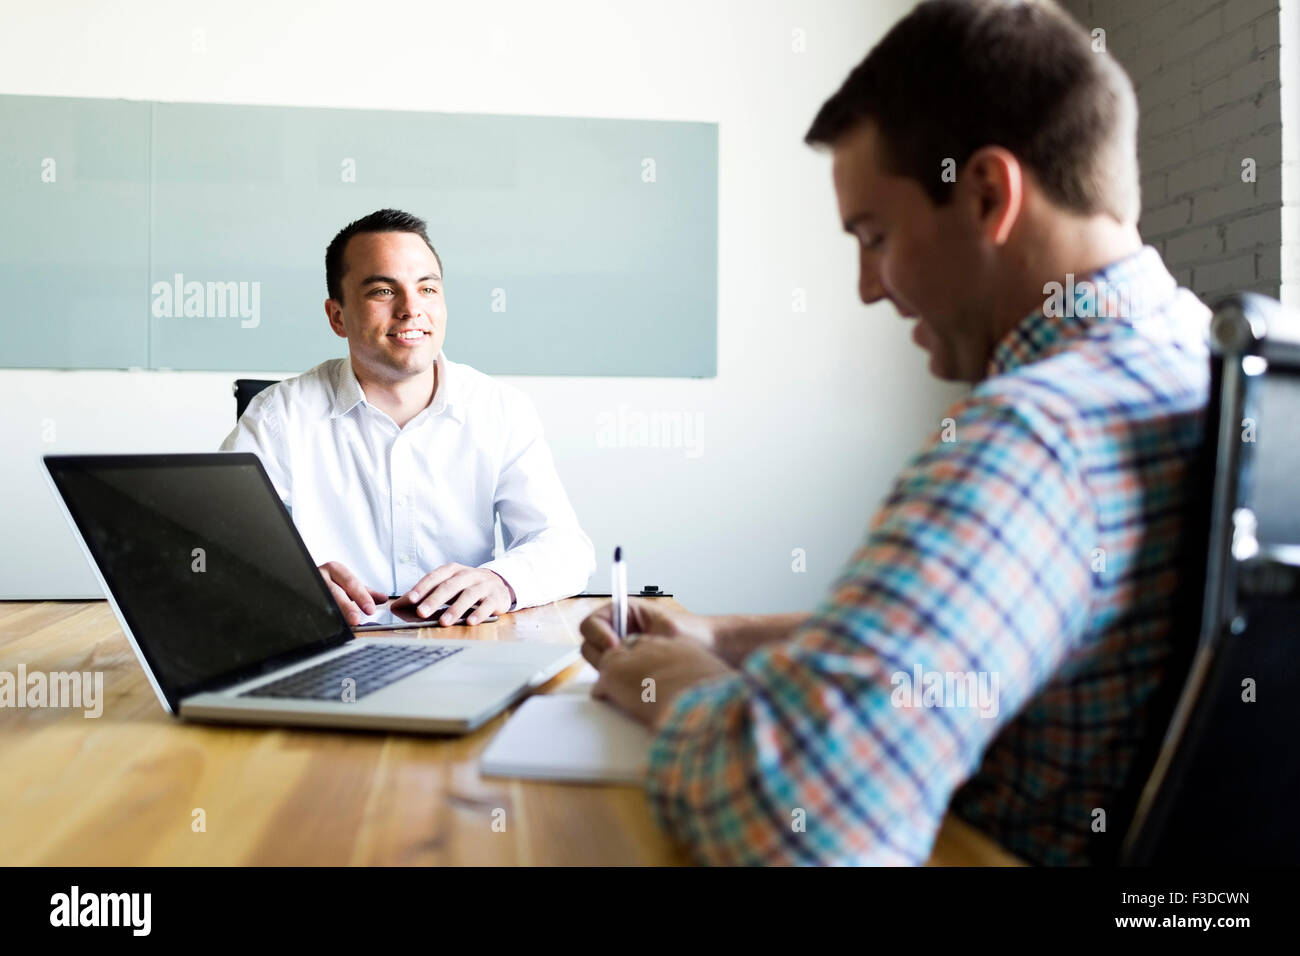 Man being interviewed in conference room - Stock Image